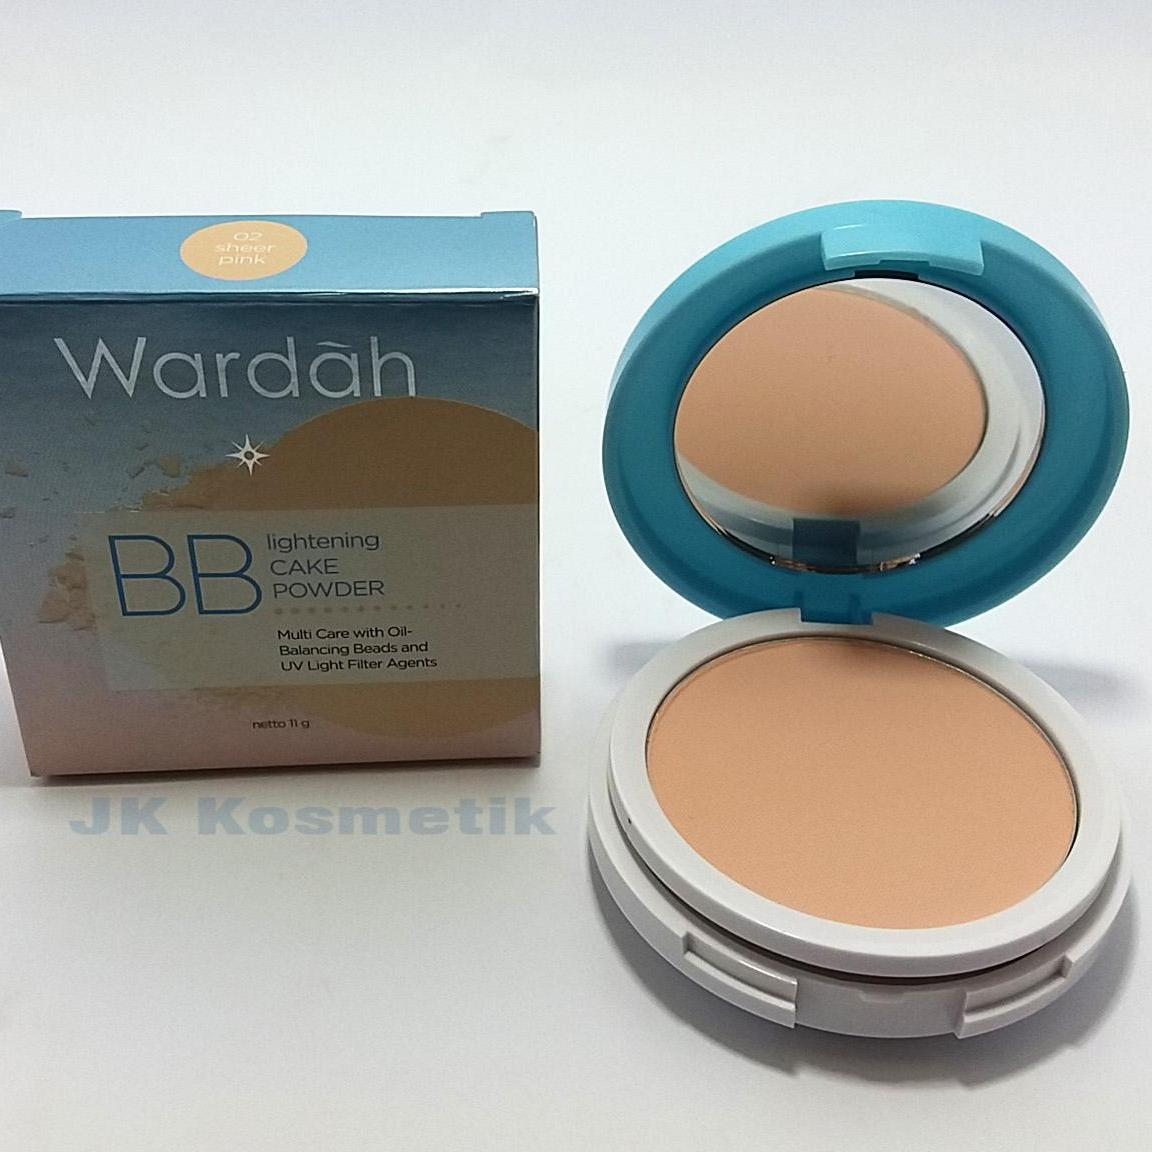 Cek Harga Baru Wardah Lightening Bb Cake Powder 01 Light Terkini Twc Exclusive Bedak Padat Recommended 02 Sheer Pink